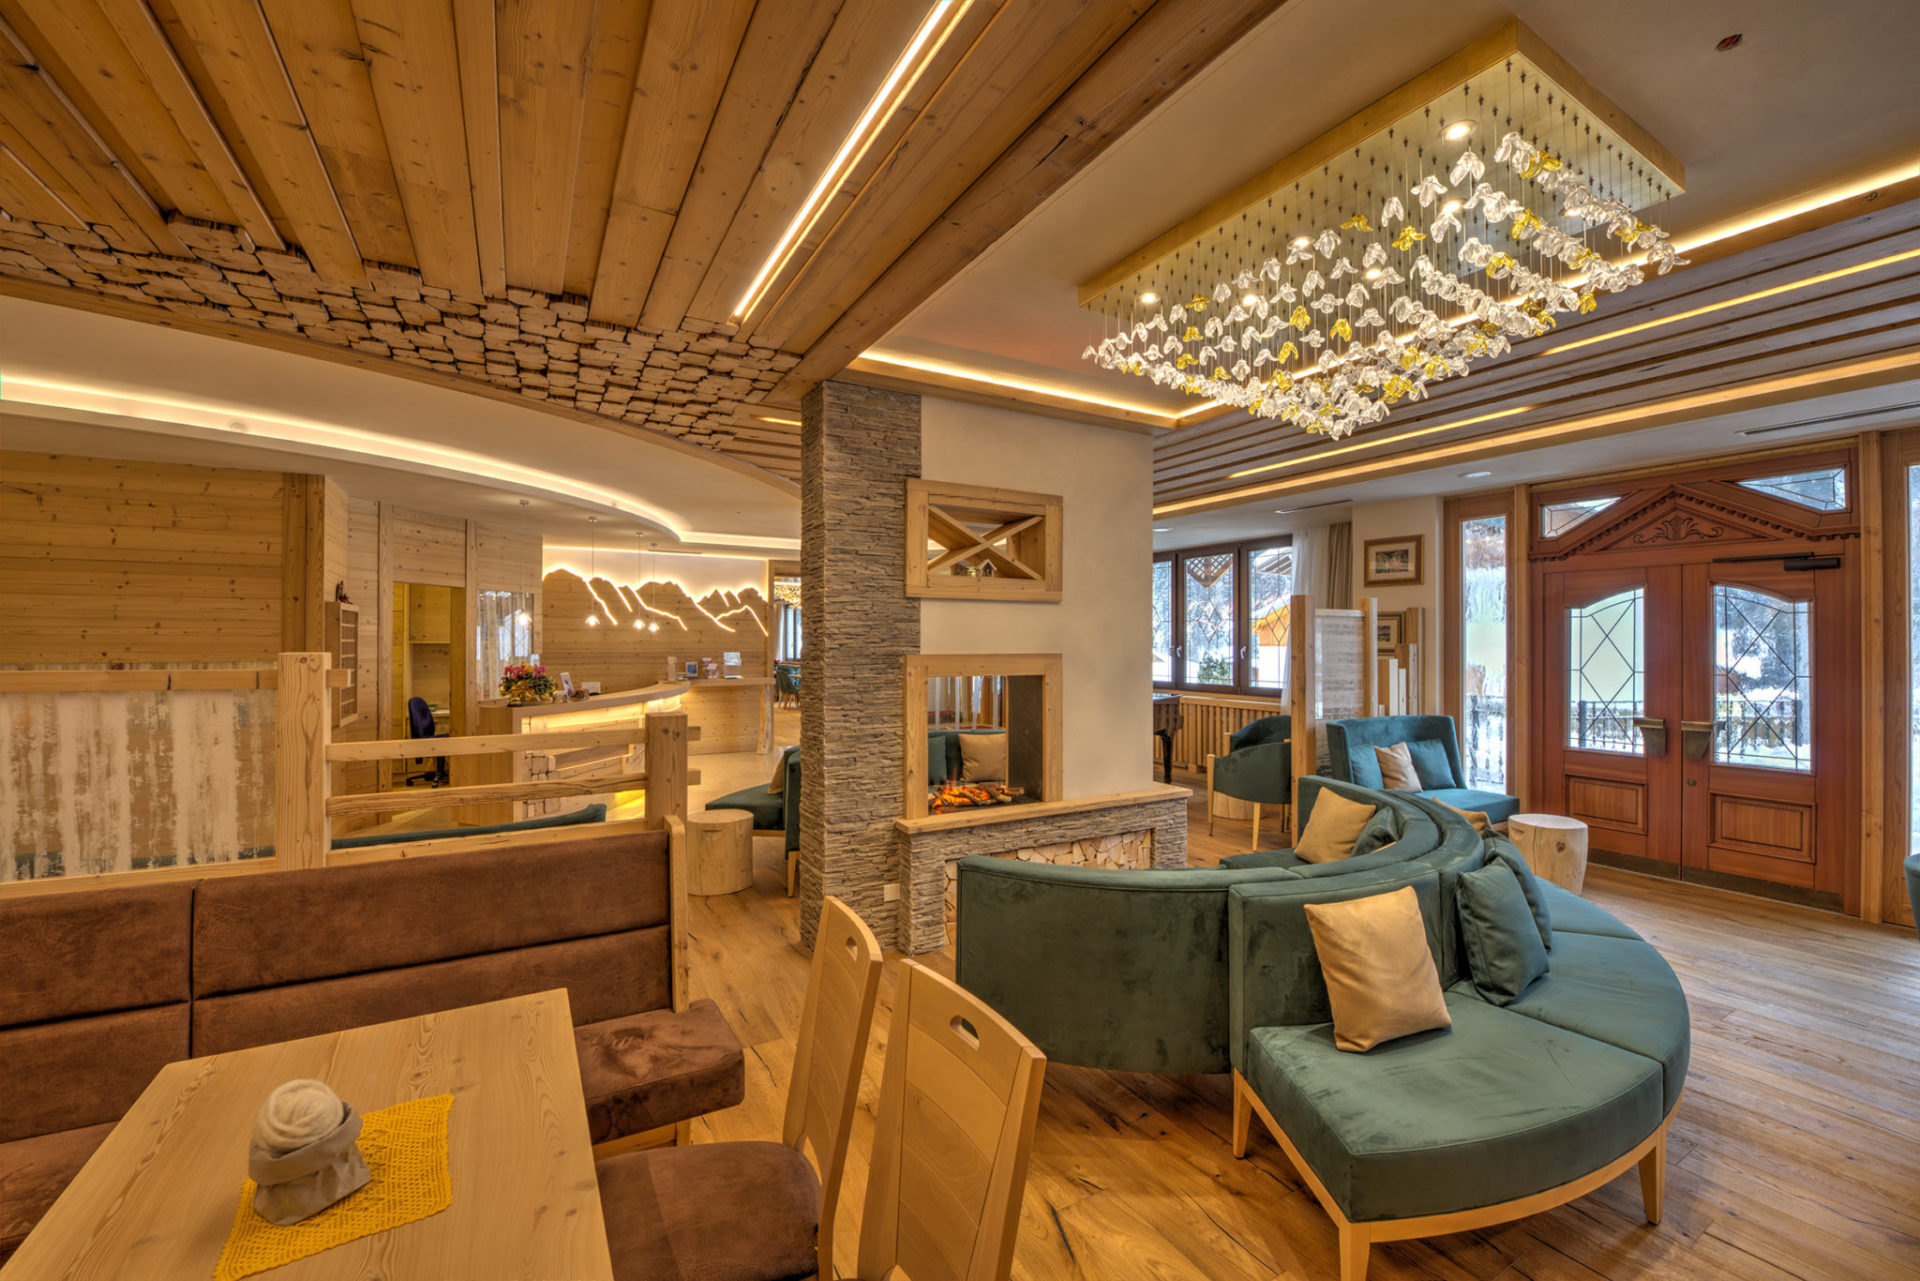 Immagine di testata per Leading Nature & Wellness Resort Kristiania in Val di Pejo